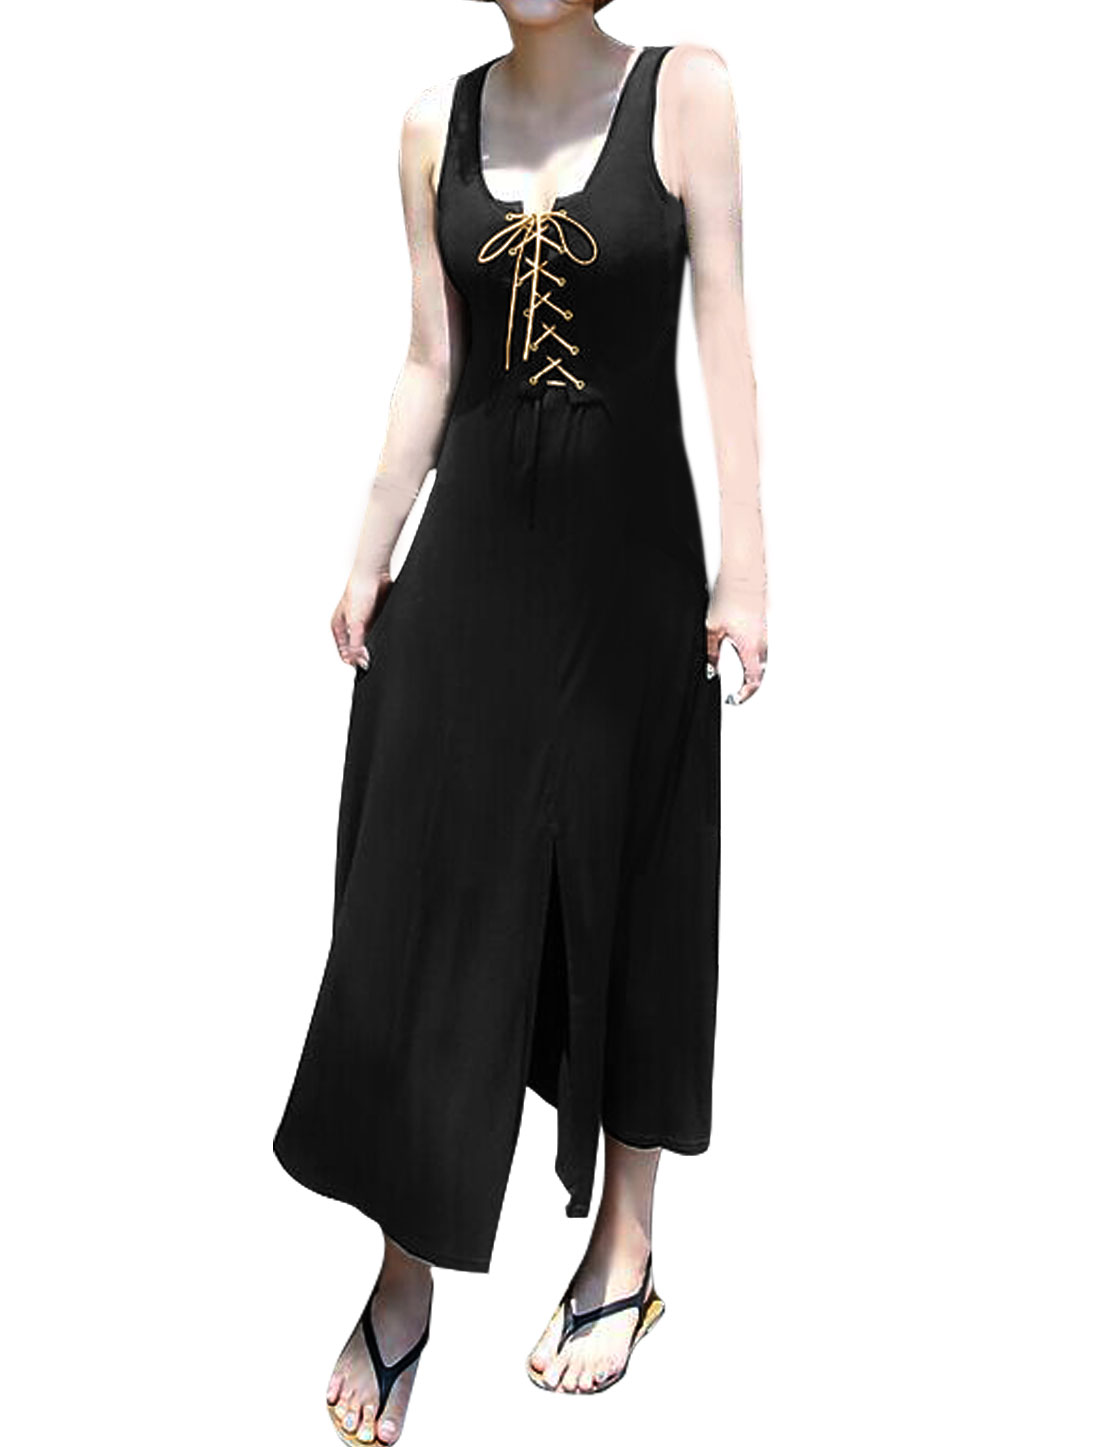 Ladies Lace-Up Split Front Sleeveless Midi Dress Black S